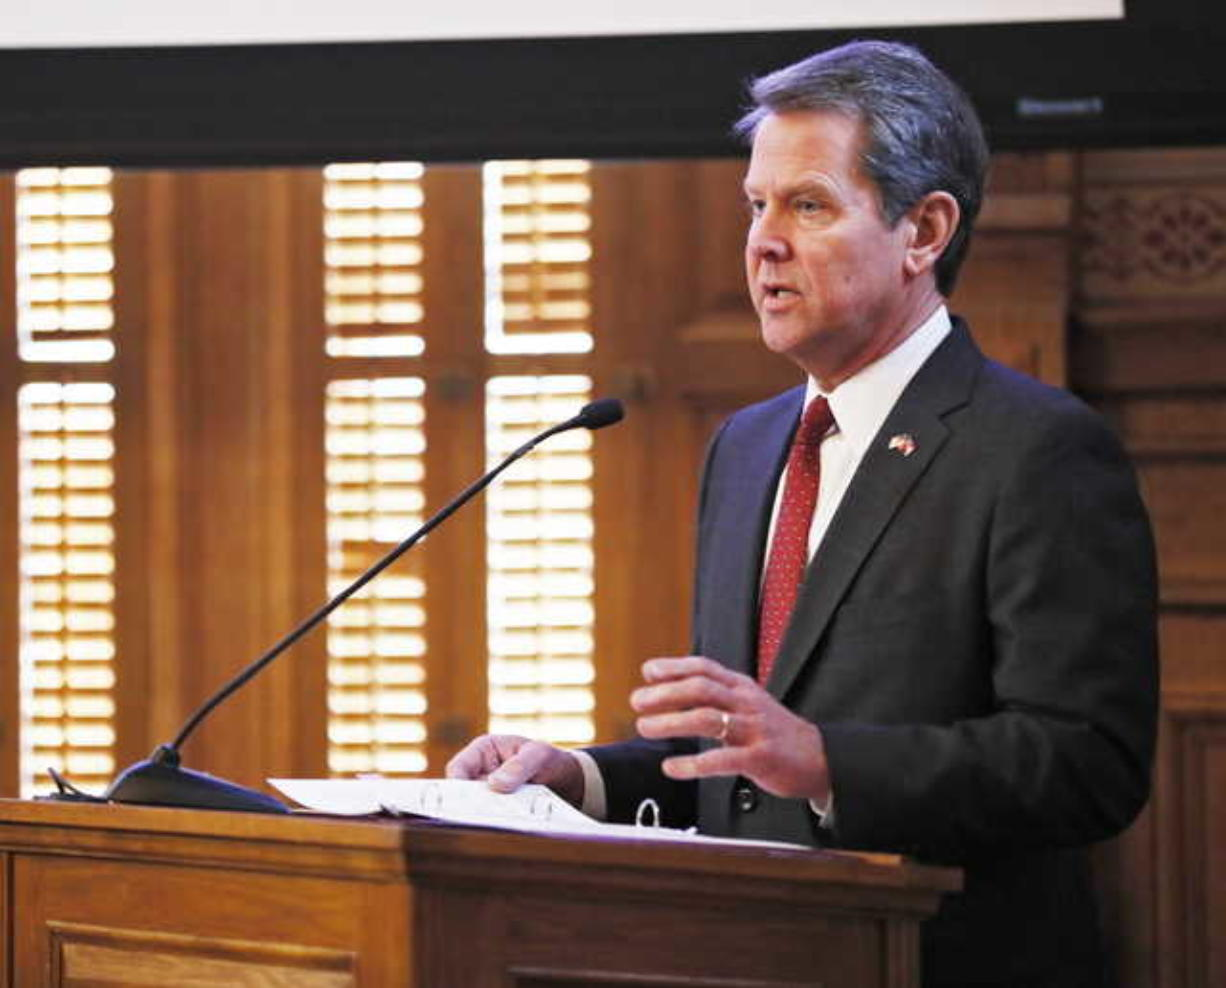 In this Wednesday, Jan. 23, 2019, file photo, Georgia Gov. Brian Kemp addresses the 2019 Season Joint Budget hearings, in Atlanta. Kemp is set to sign legislation on Tuesday, May 7, 2019, banning abortions at around six weeks of pregnancy, before many women know they're pregnant.